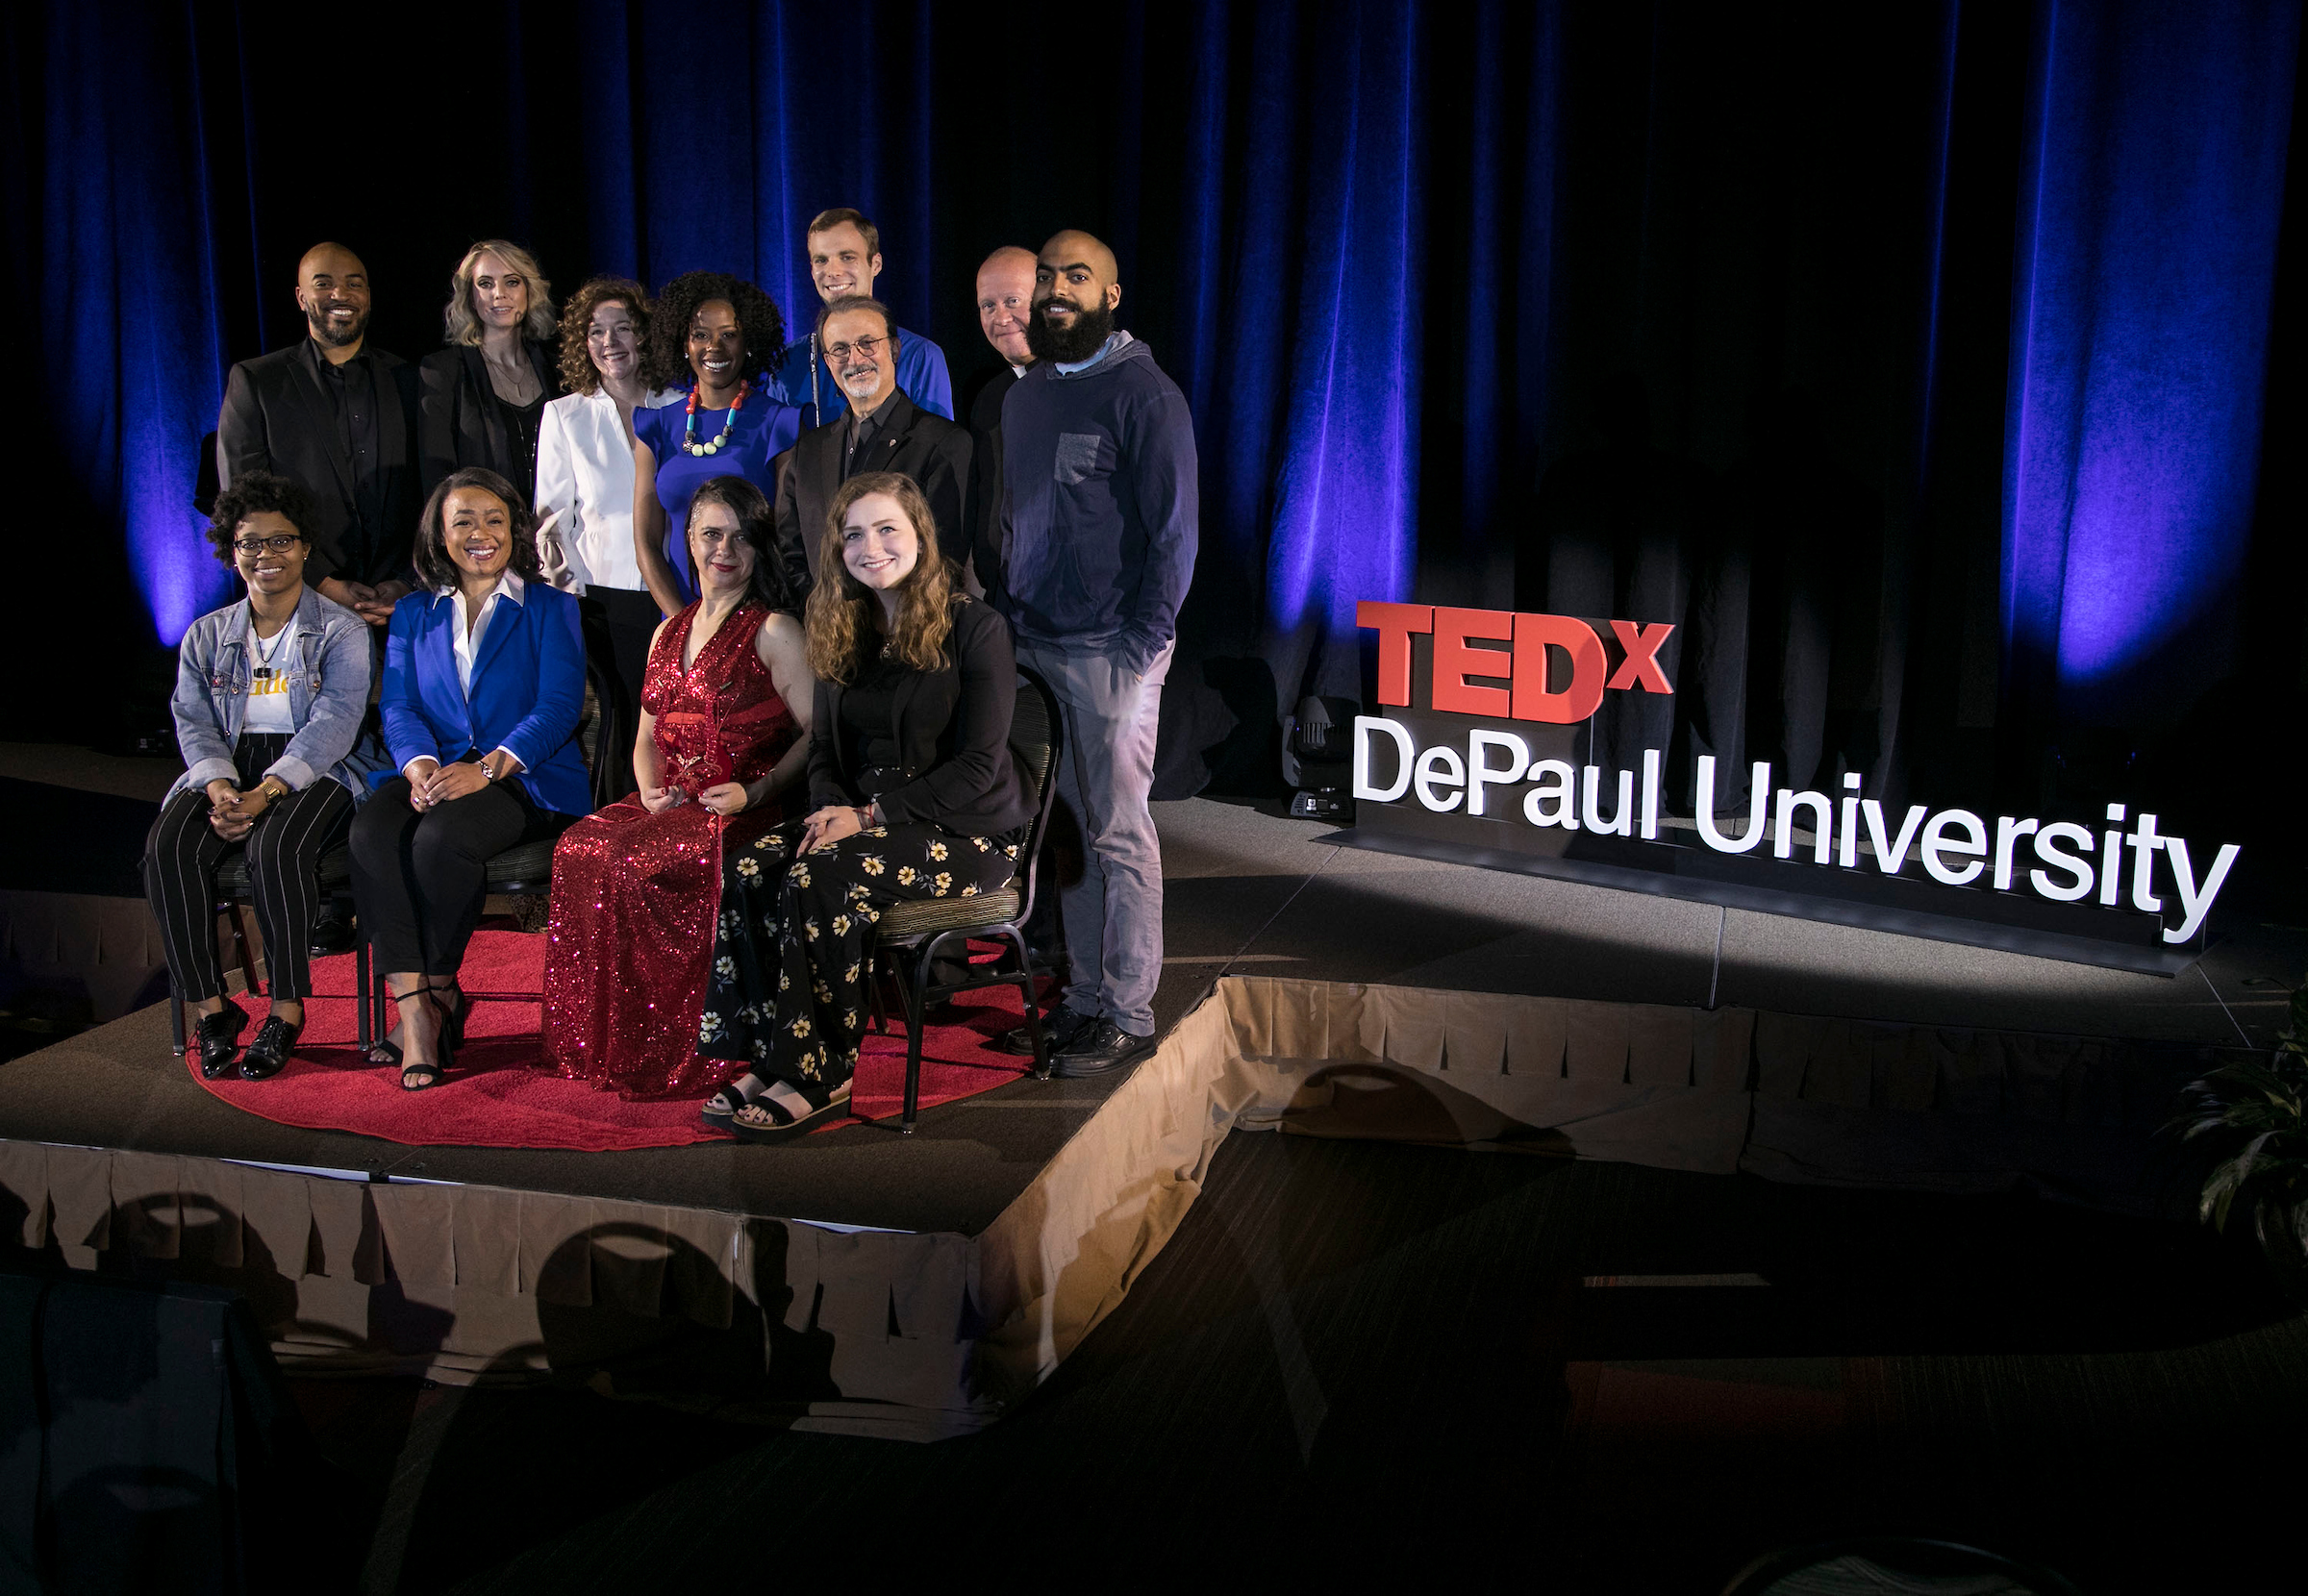 Presenters from the 2018 TEDxDePaulUniversity